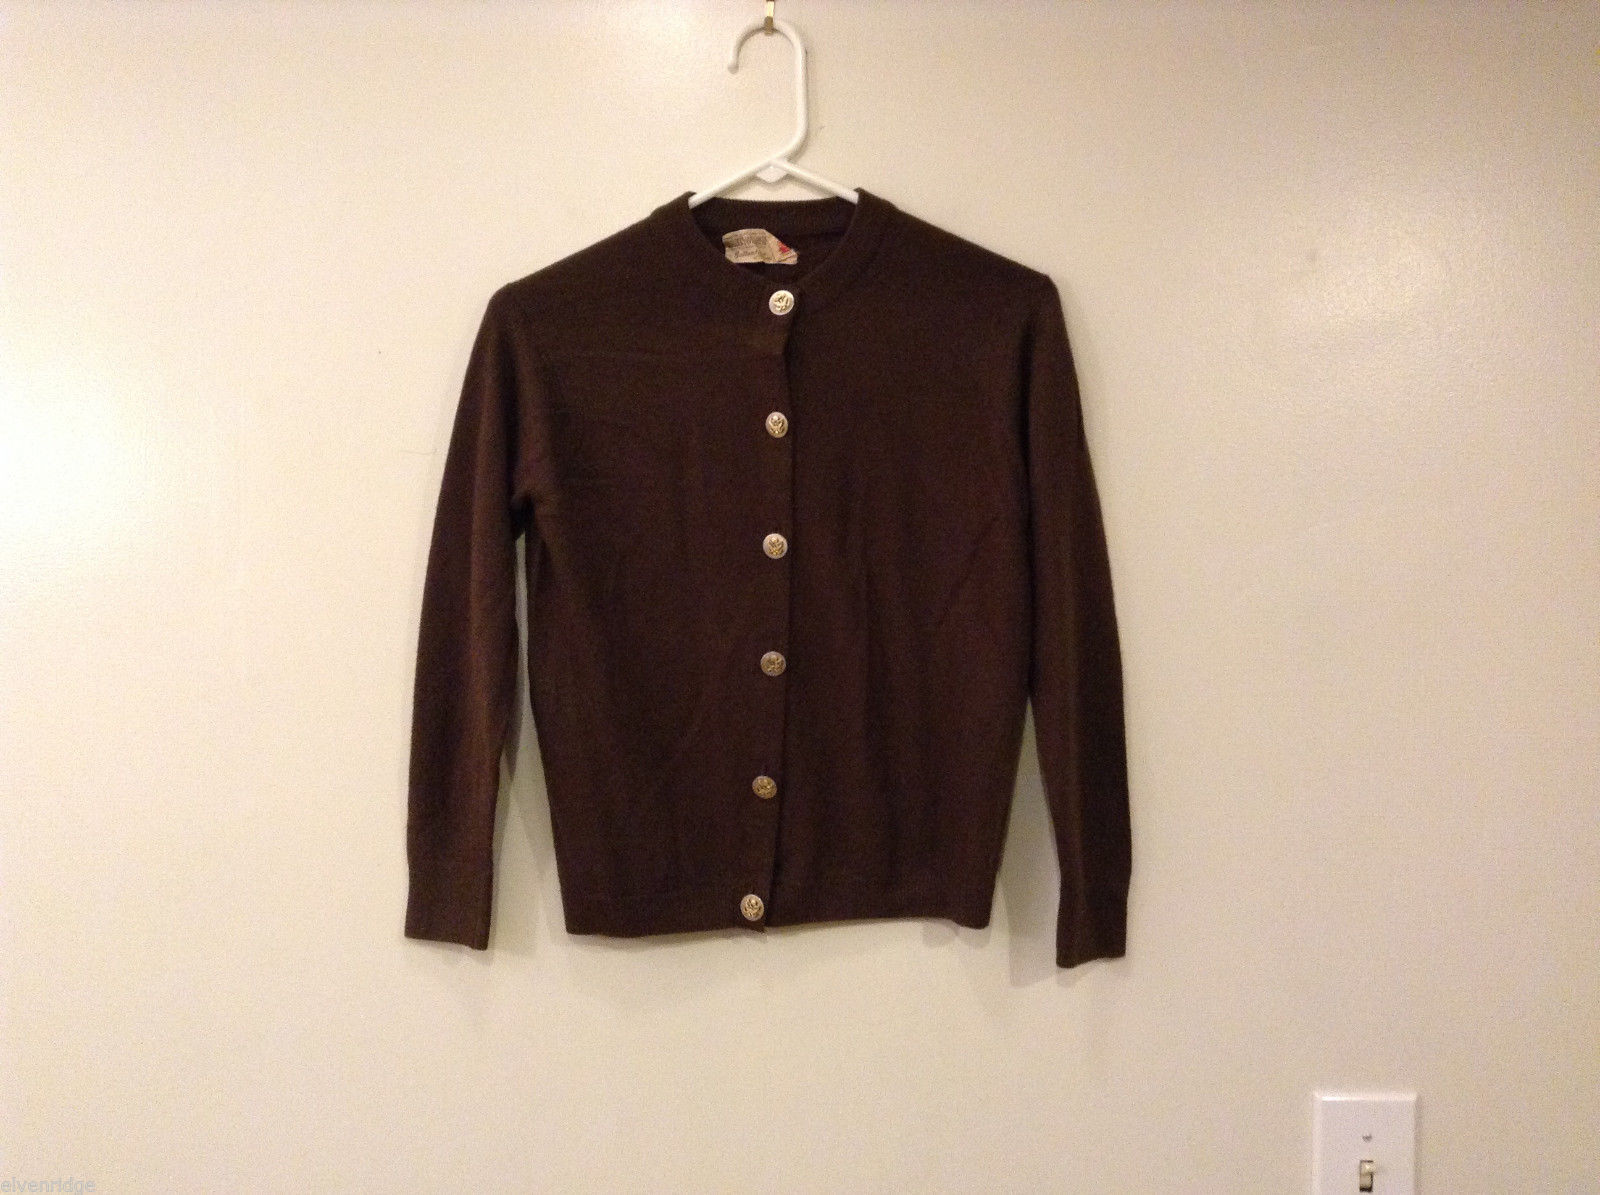 Bullock's Wilshire Brown Cardigan Sweater 100% Cashmere Front Buttons, size S